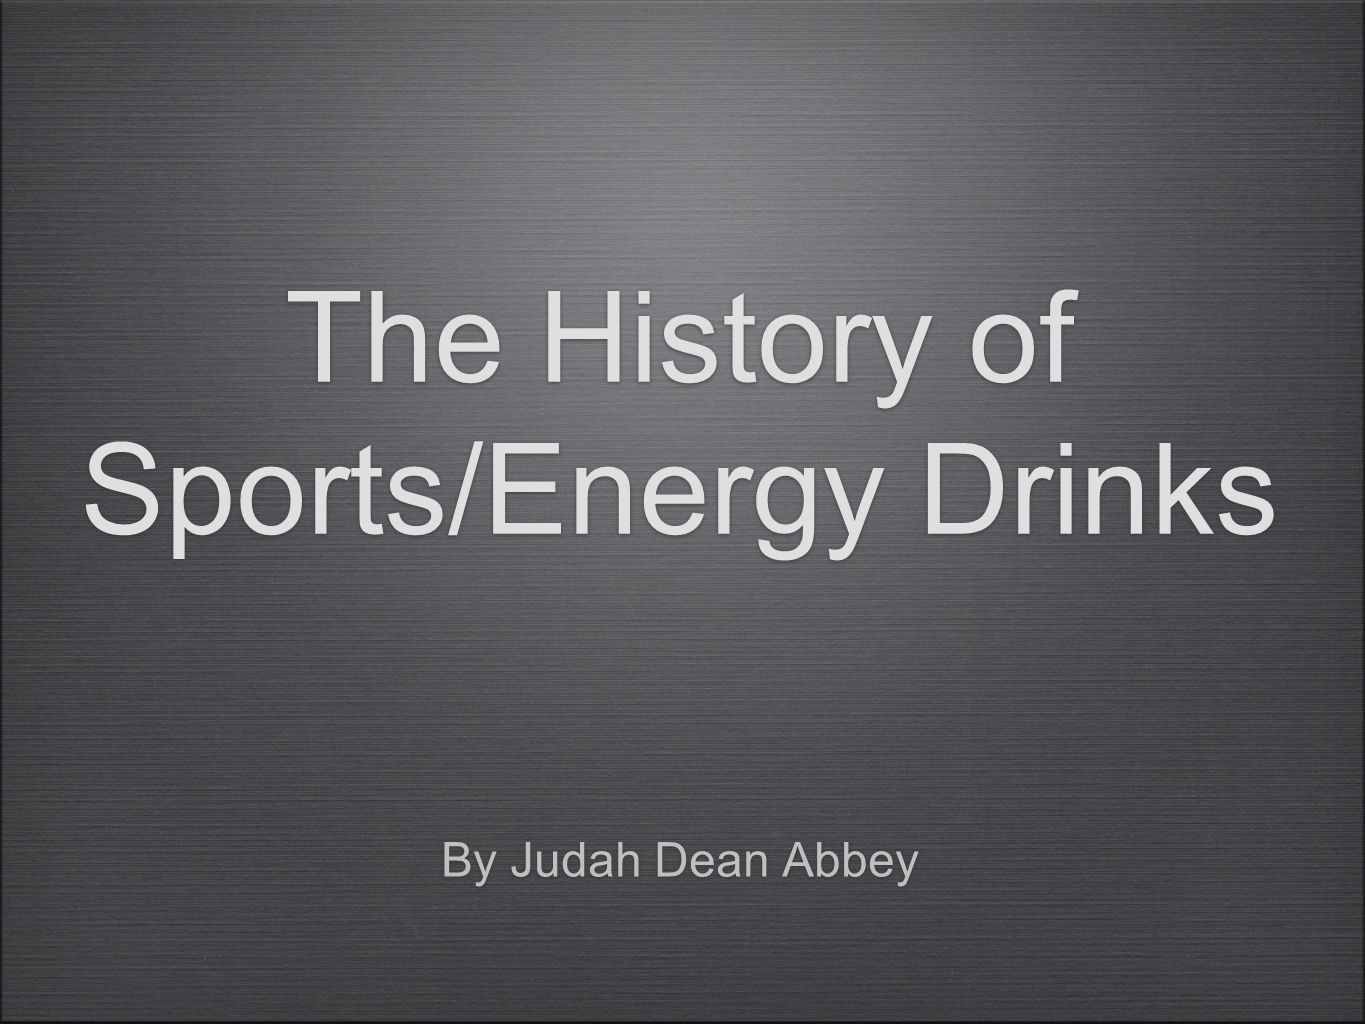 The History of Sports/Energy Drinks By Judah Dean Abbey